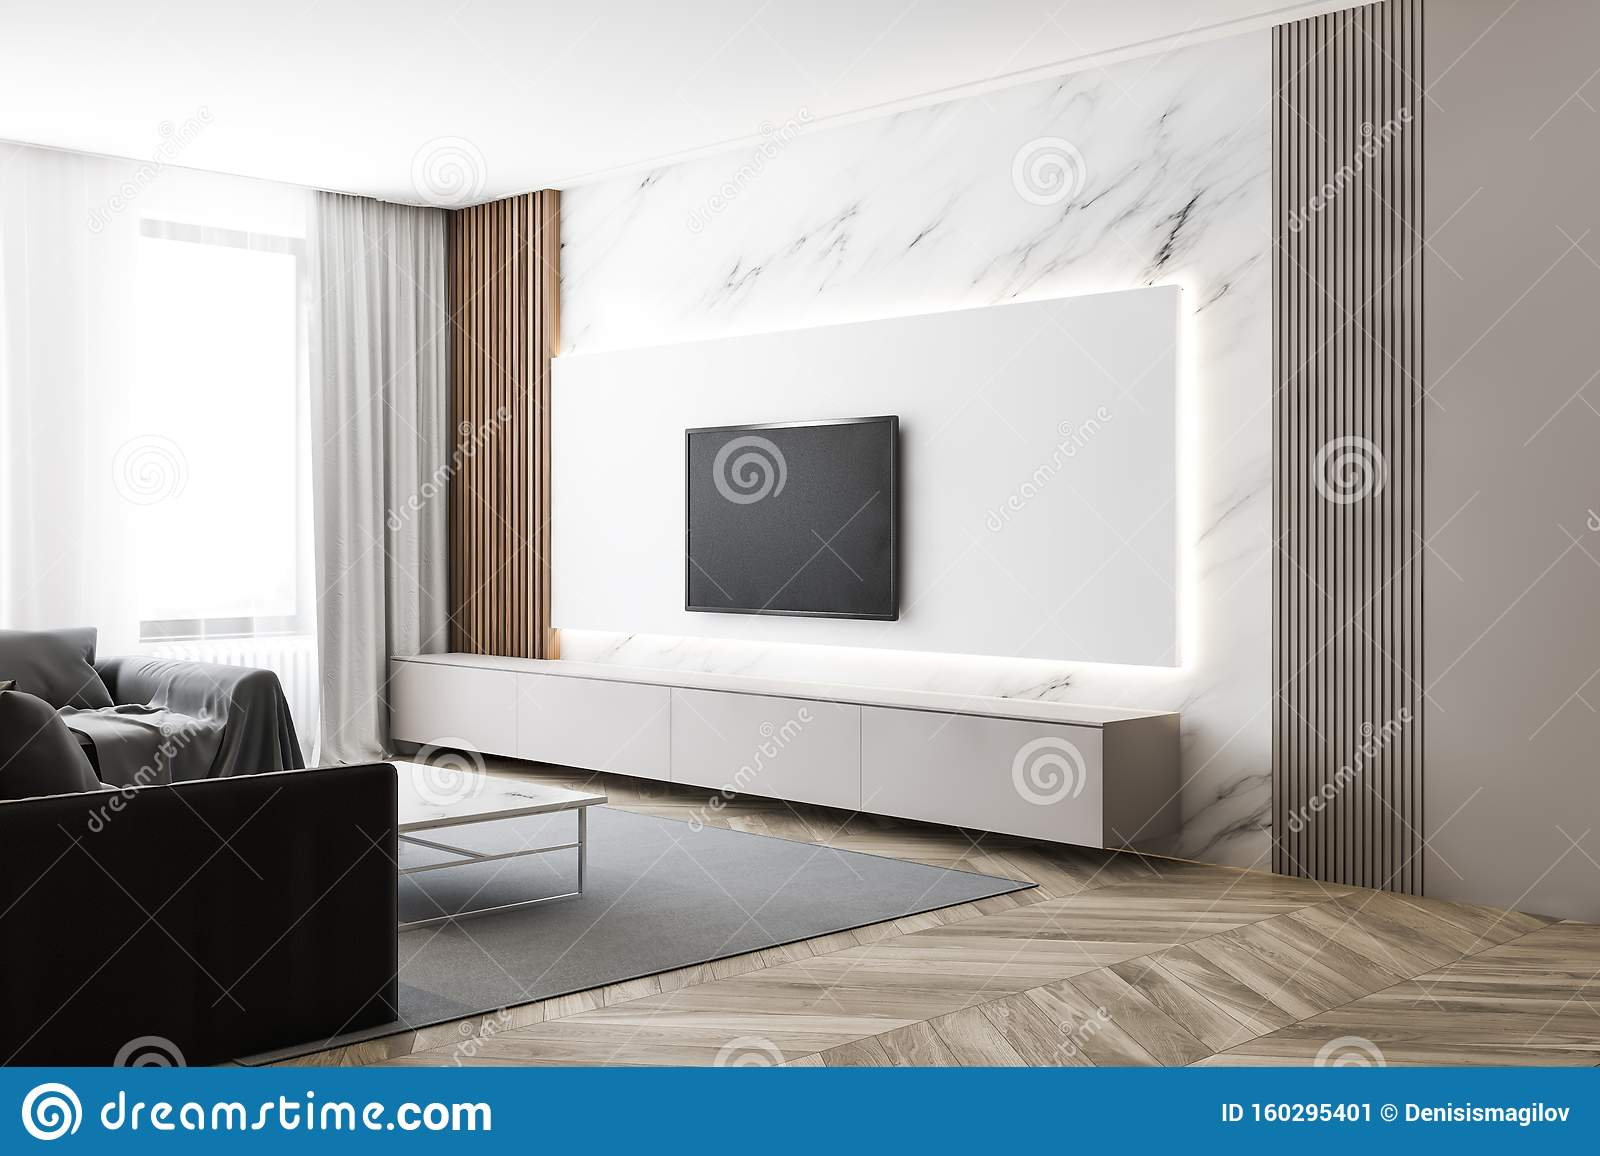 Luxury White Marble Living Room With Tv And Sofa Stock Illustration Illustration Of Elegance Coffee 160295401